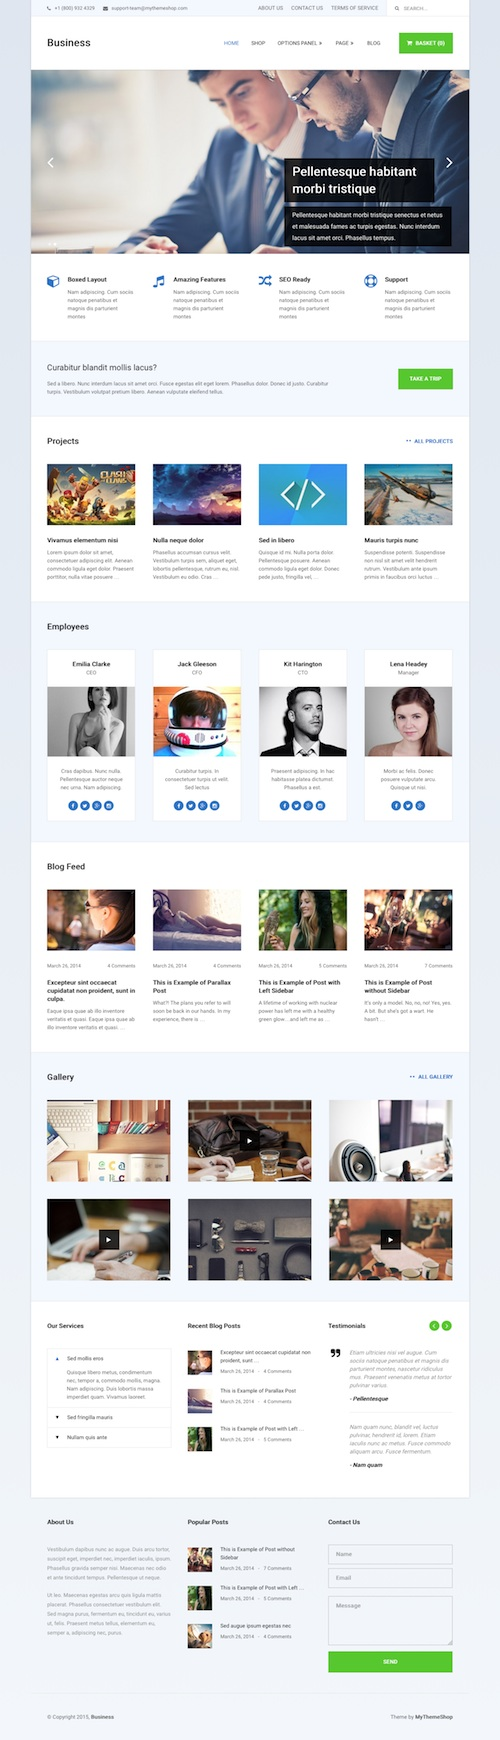 business-mythemeshop